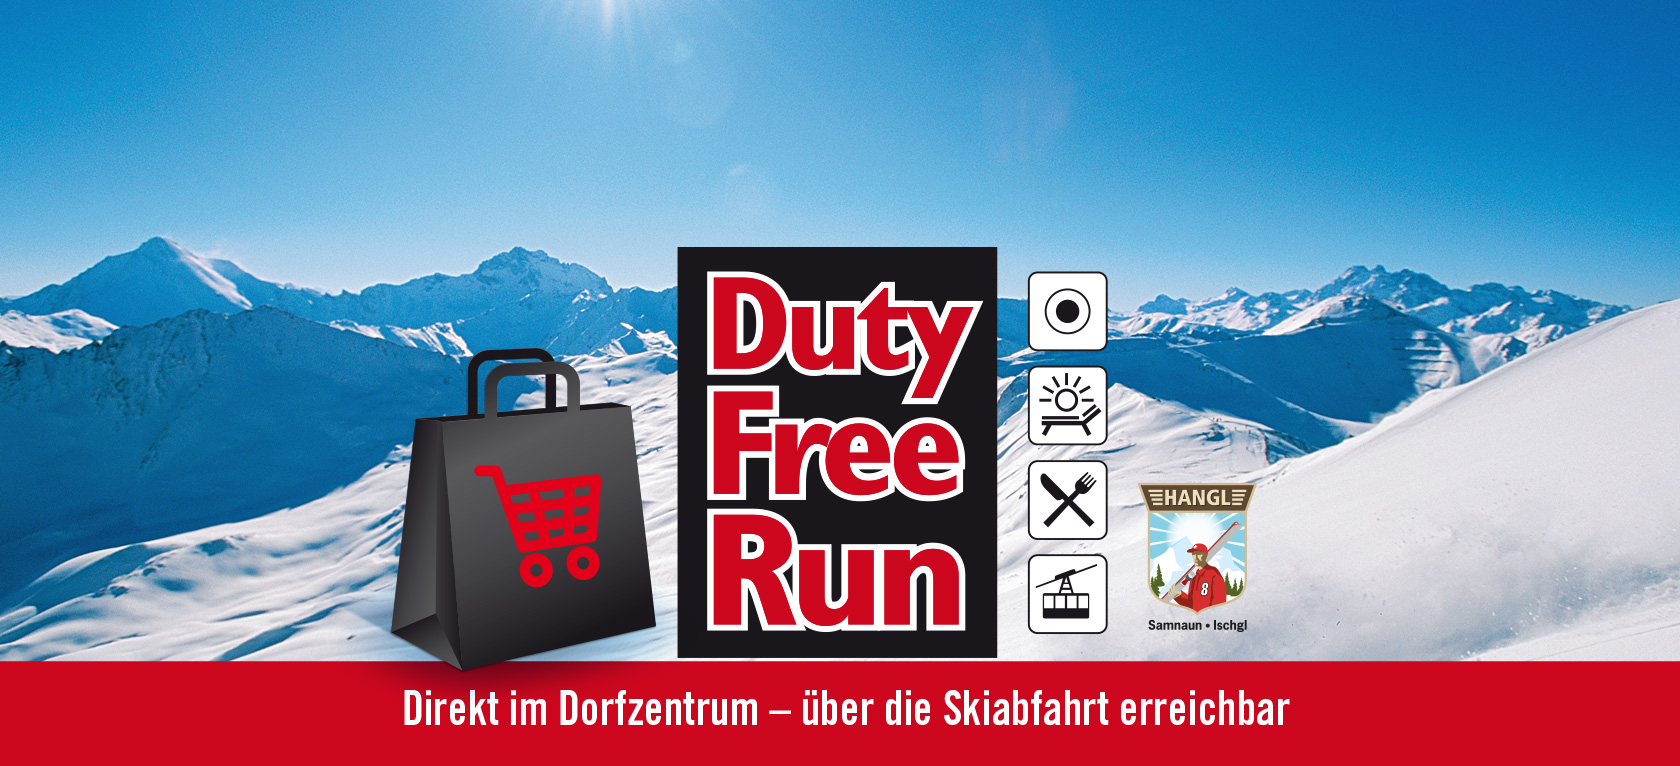 duty-free-run-samnaun-01